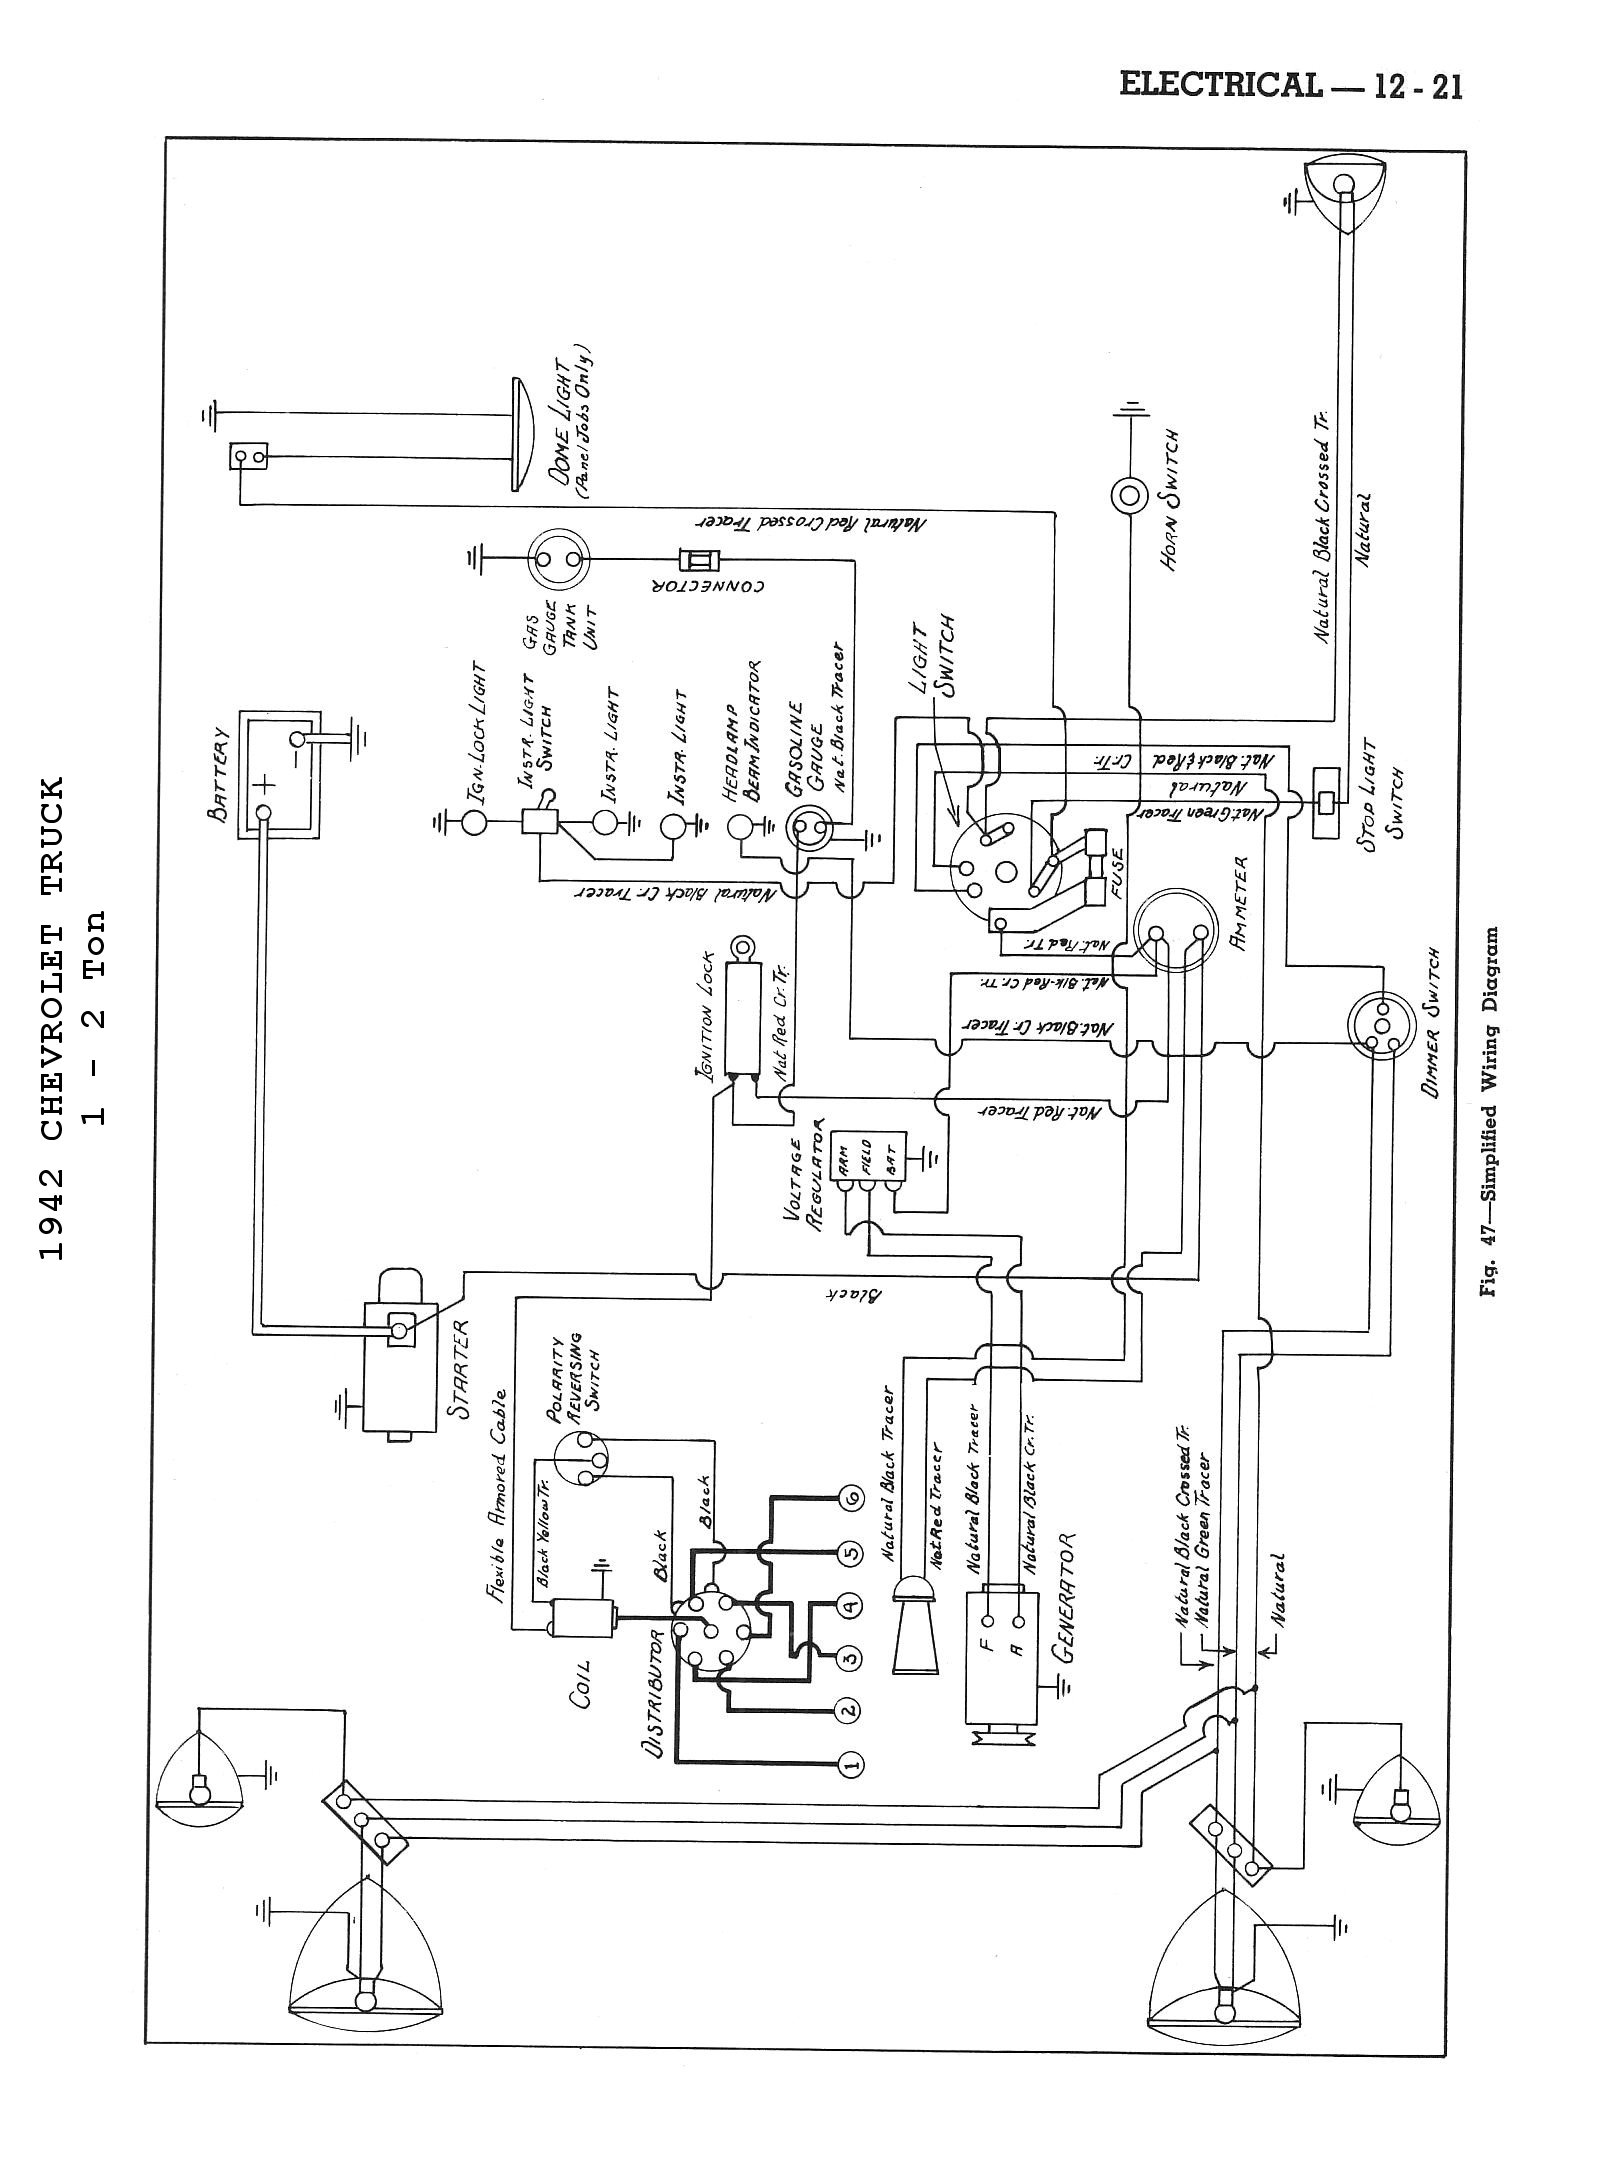 42cm4x2t1221 chevy wiring diagrams 57 chevy truck wiring harness at soozxer.org